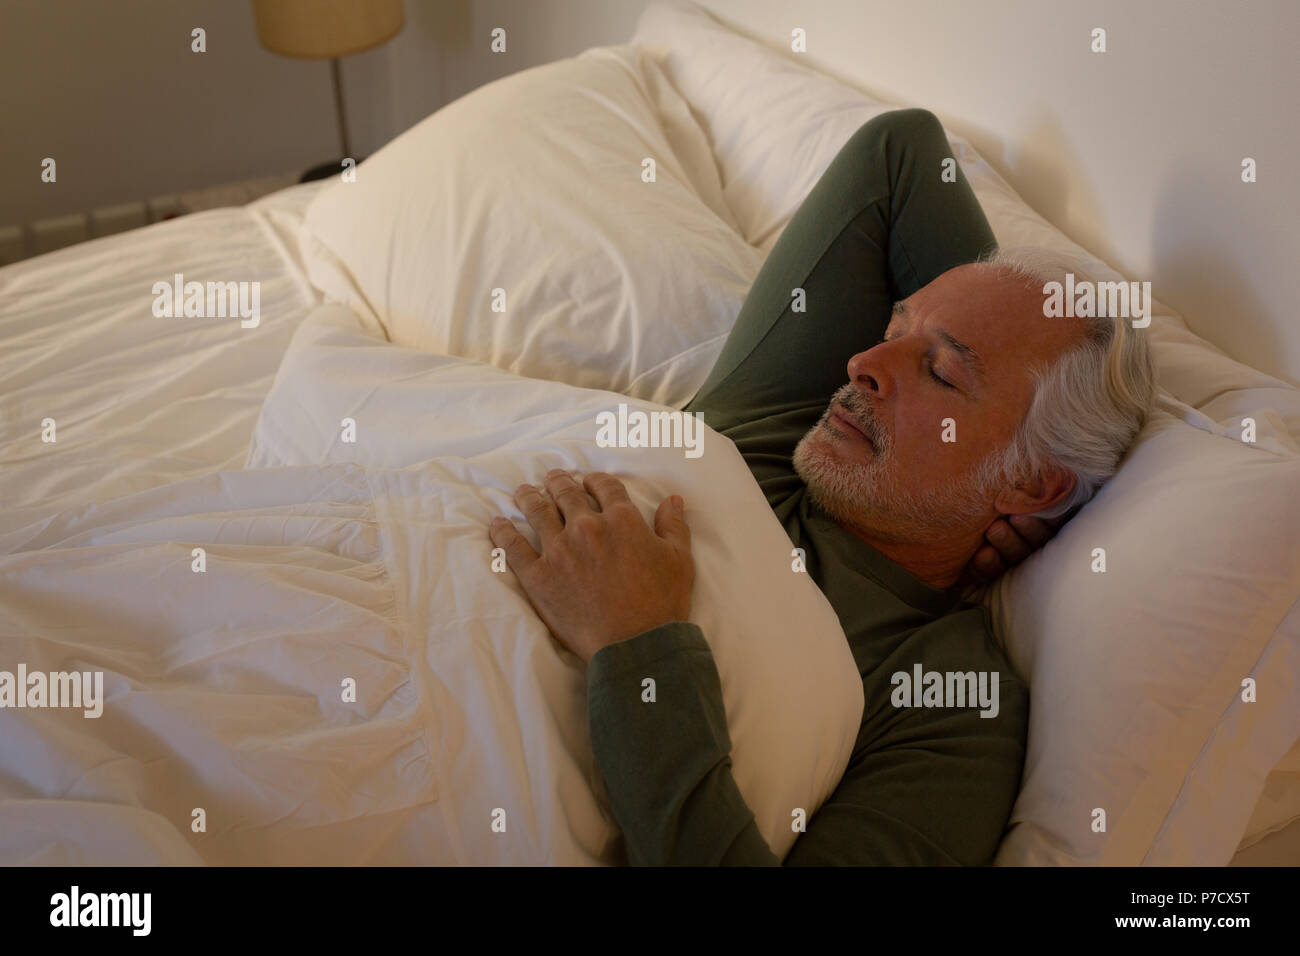 Senior man sleeping in bedroom - Stock Image